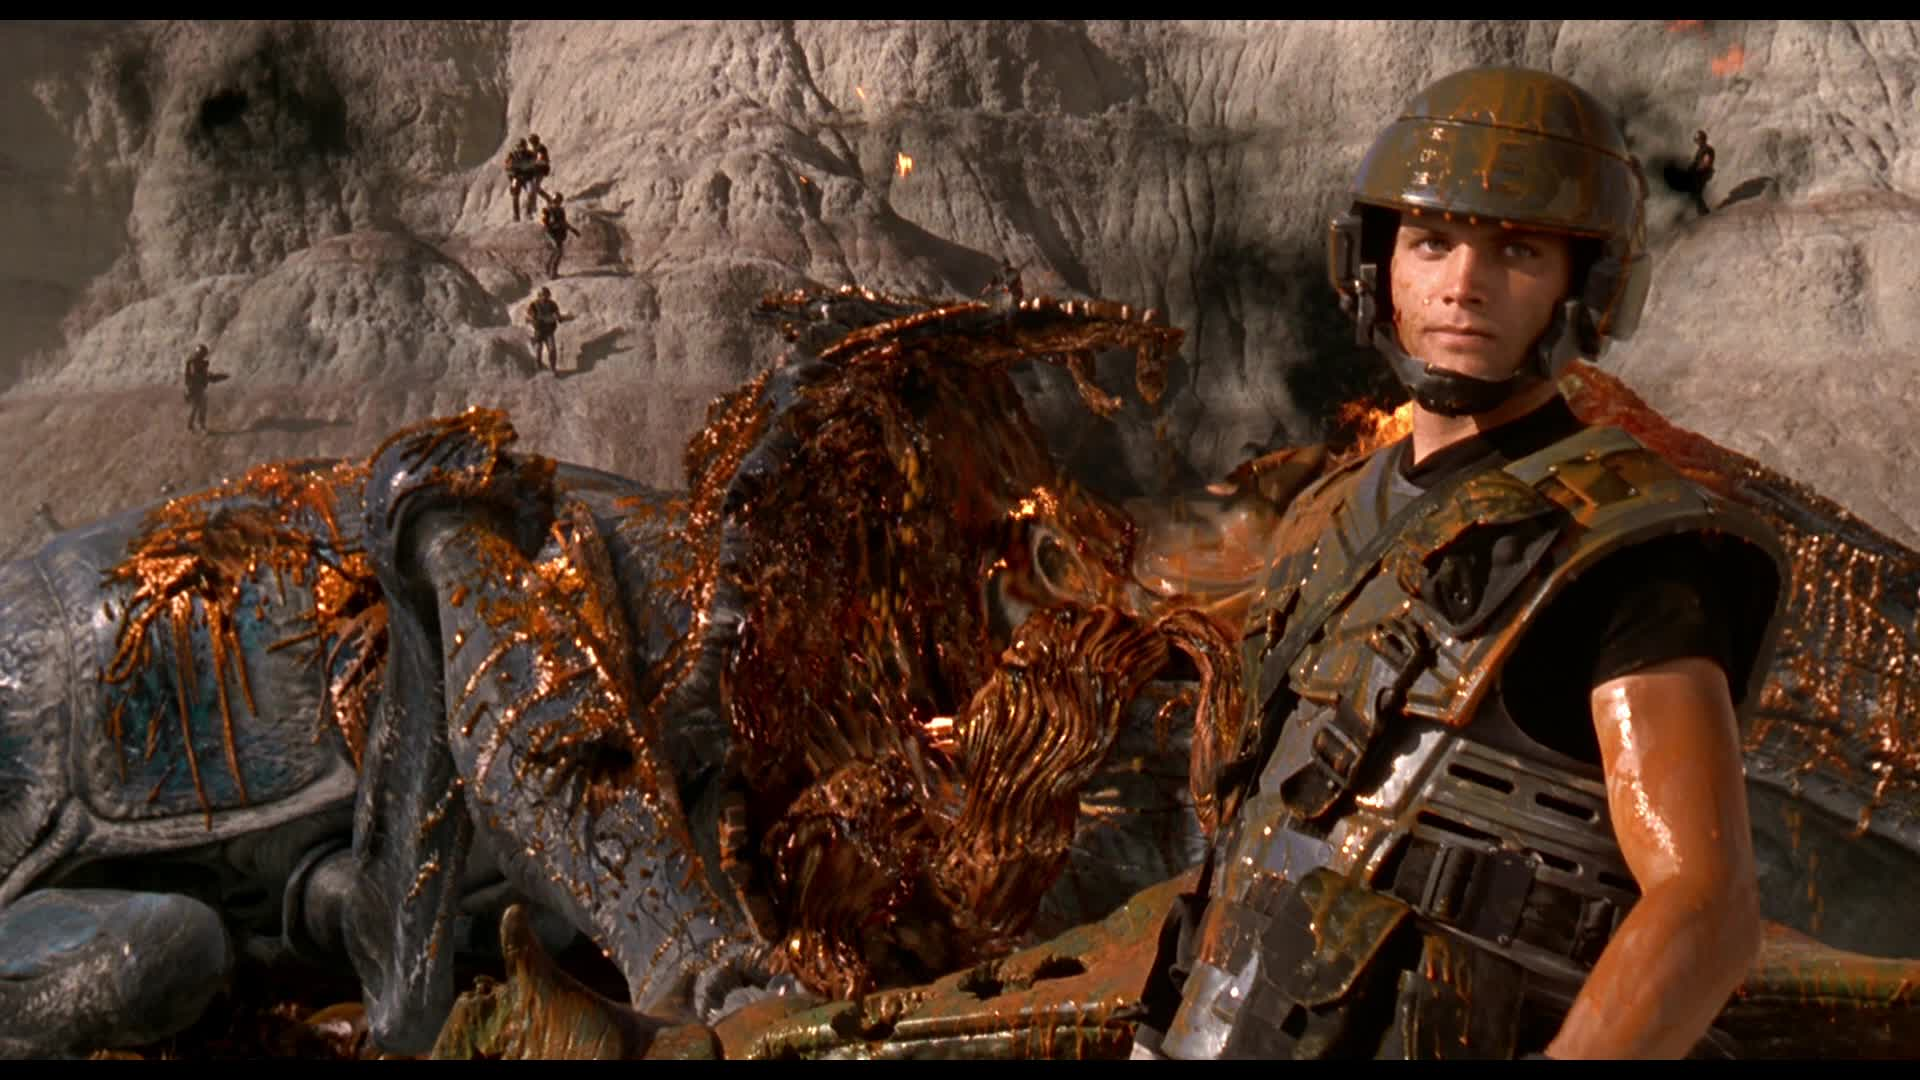 Casper Van Dien as Johnny Rico in Starship Troopers.